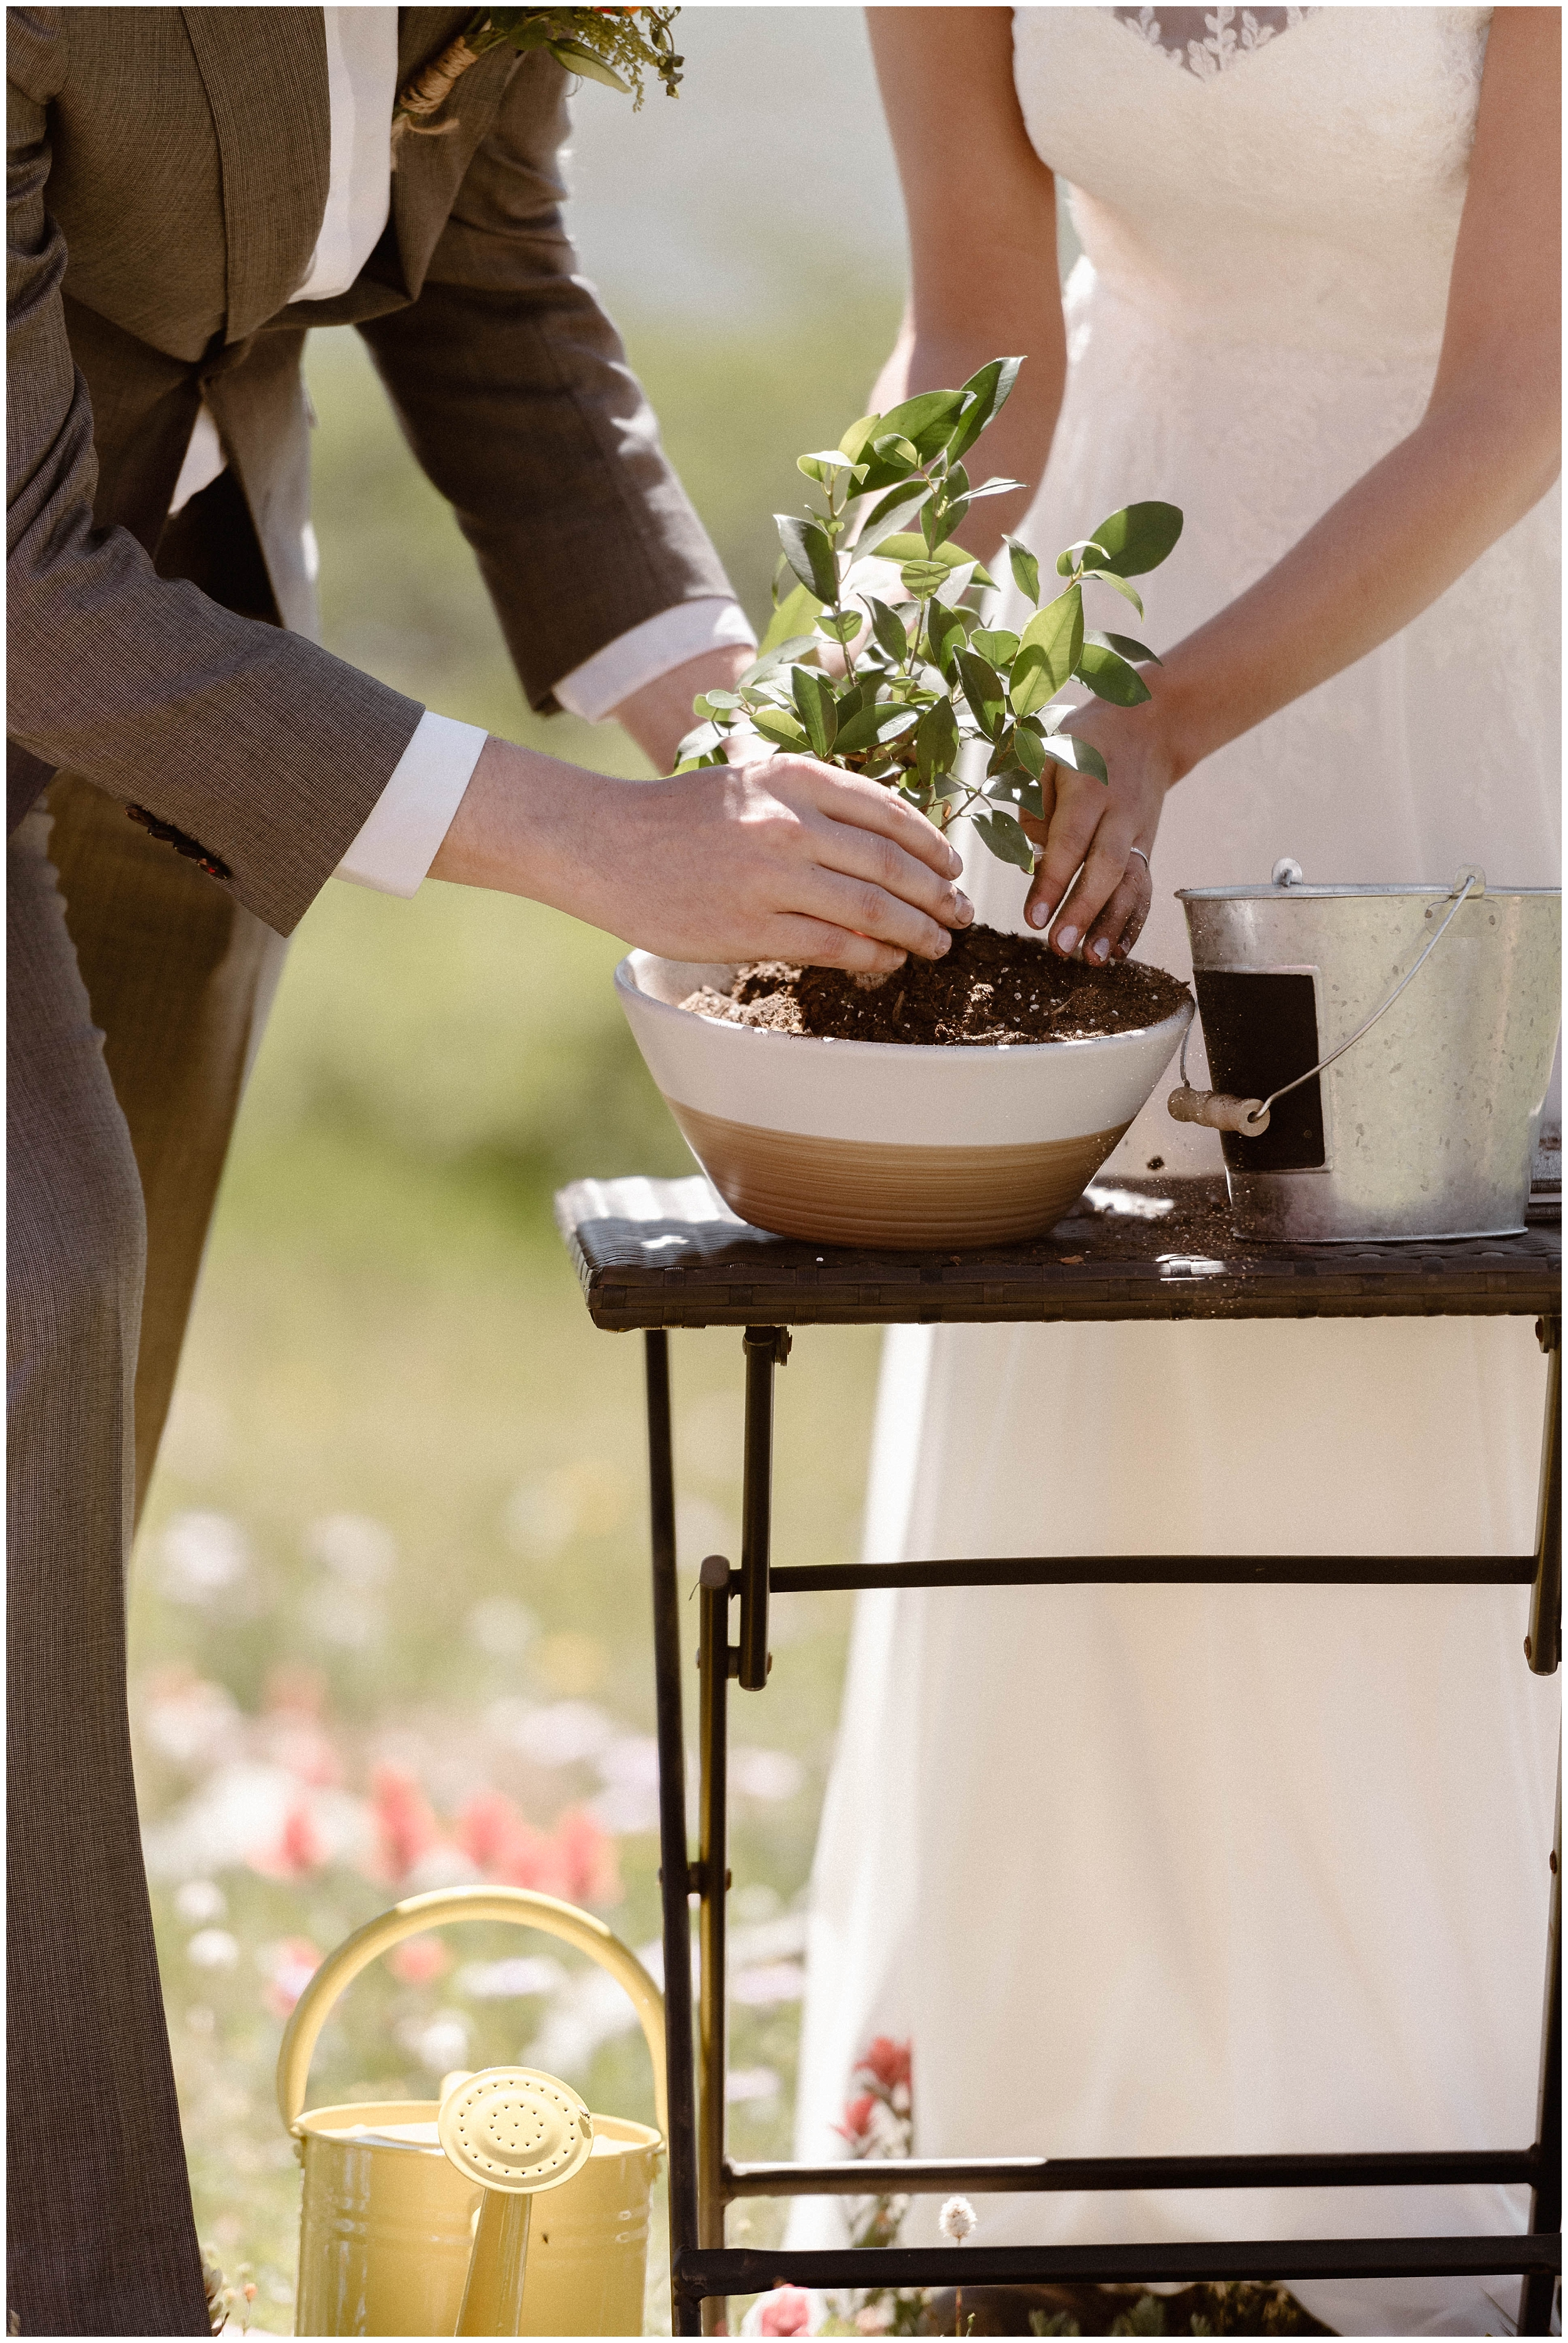 This close-up, small wedding photo, captured by Adventure Instead, an elopement photographer, shows a couple planting a small tree in a tiny bowl. The bride and the groom dirty their hands as they plant a tree together as a symbol of their unity.